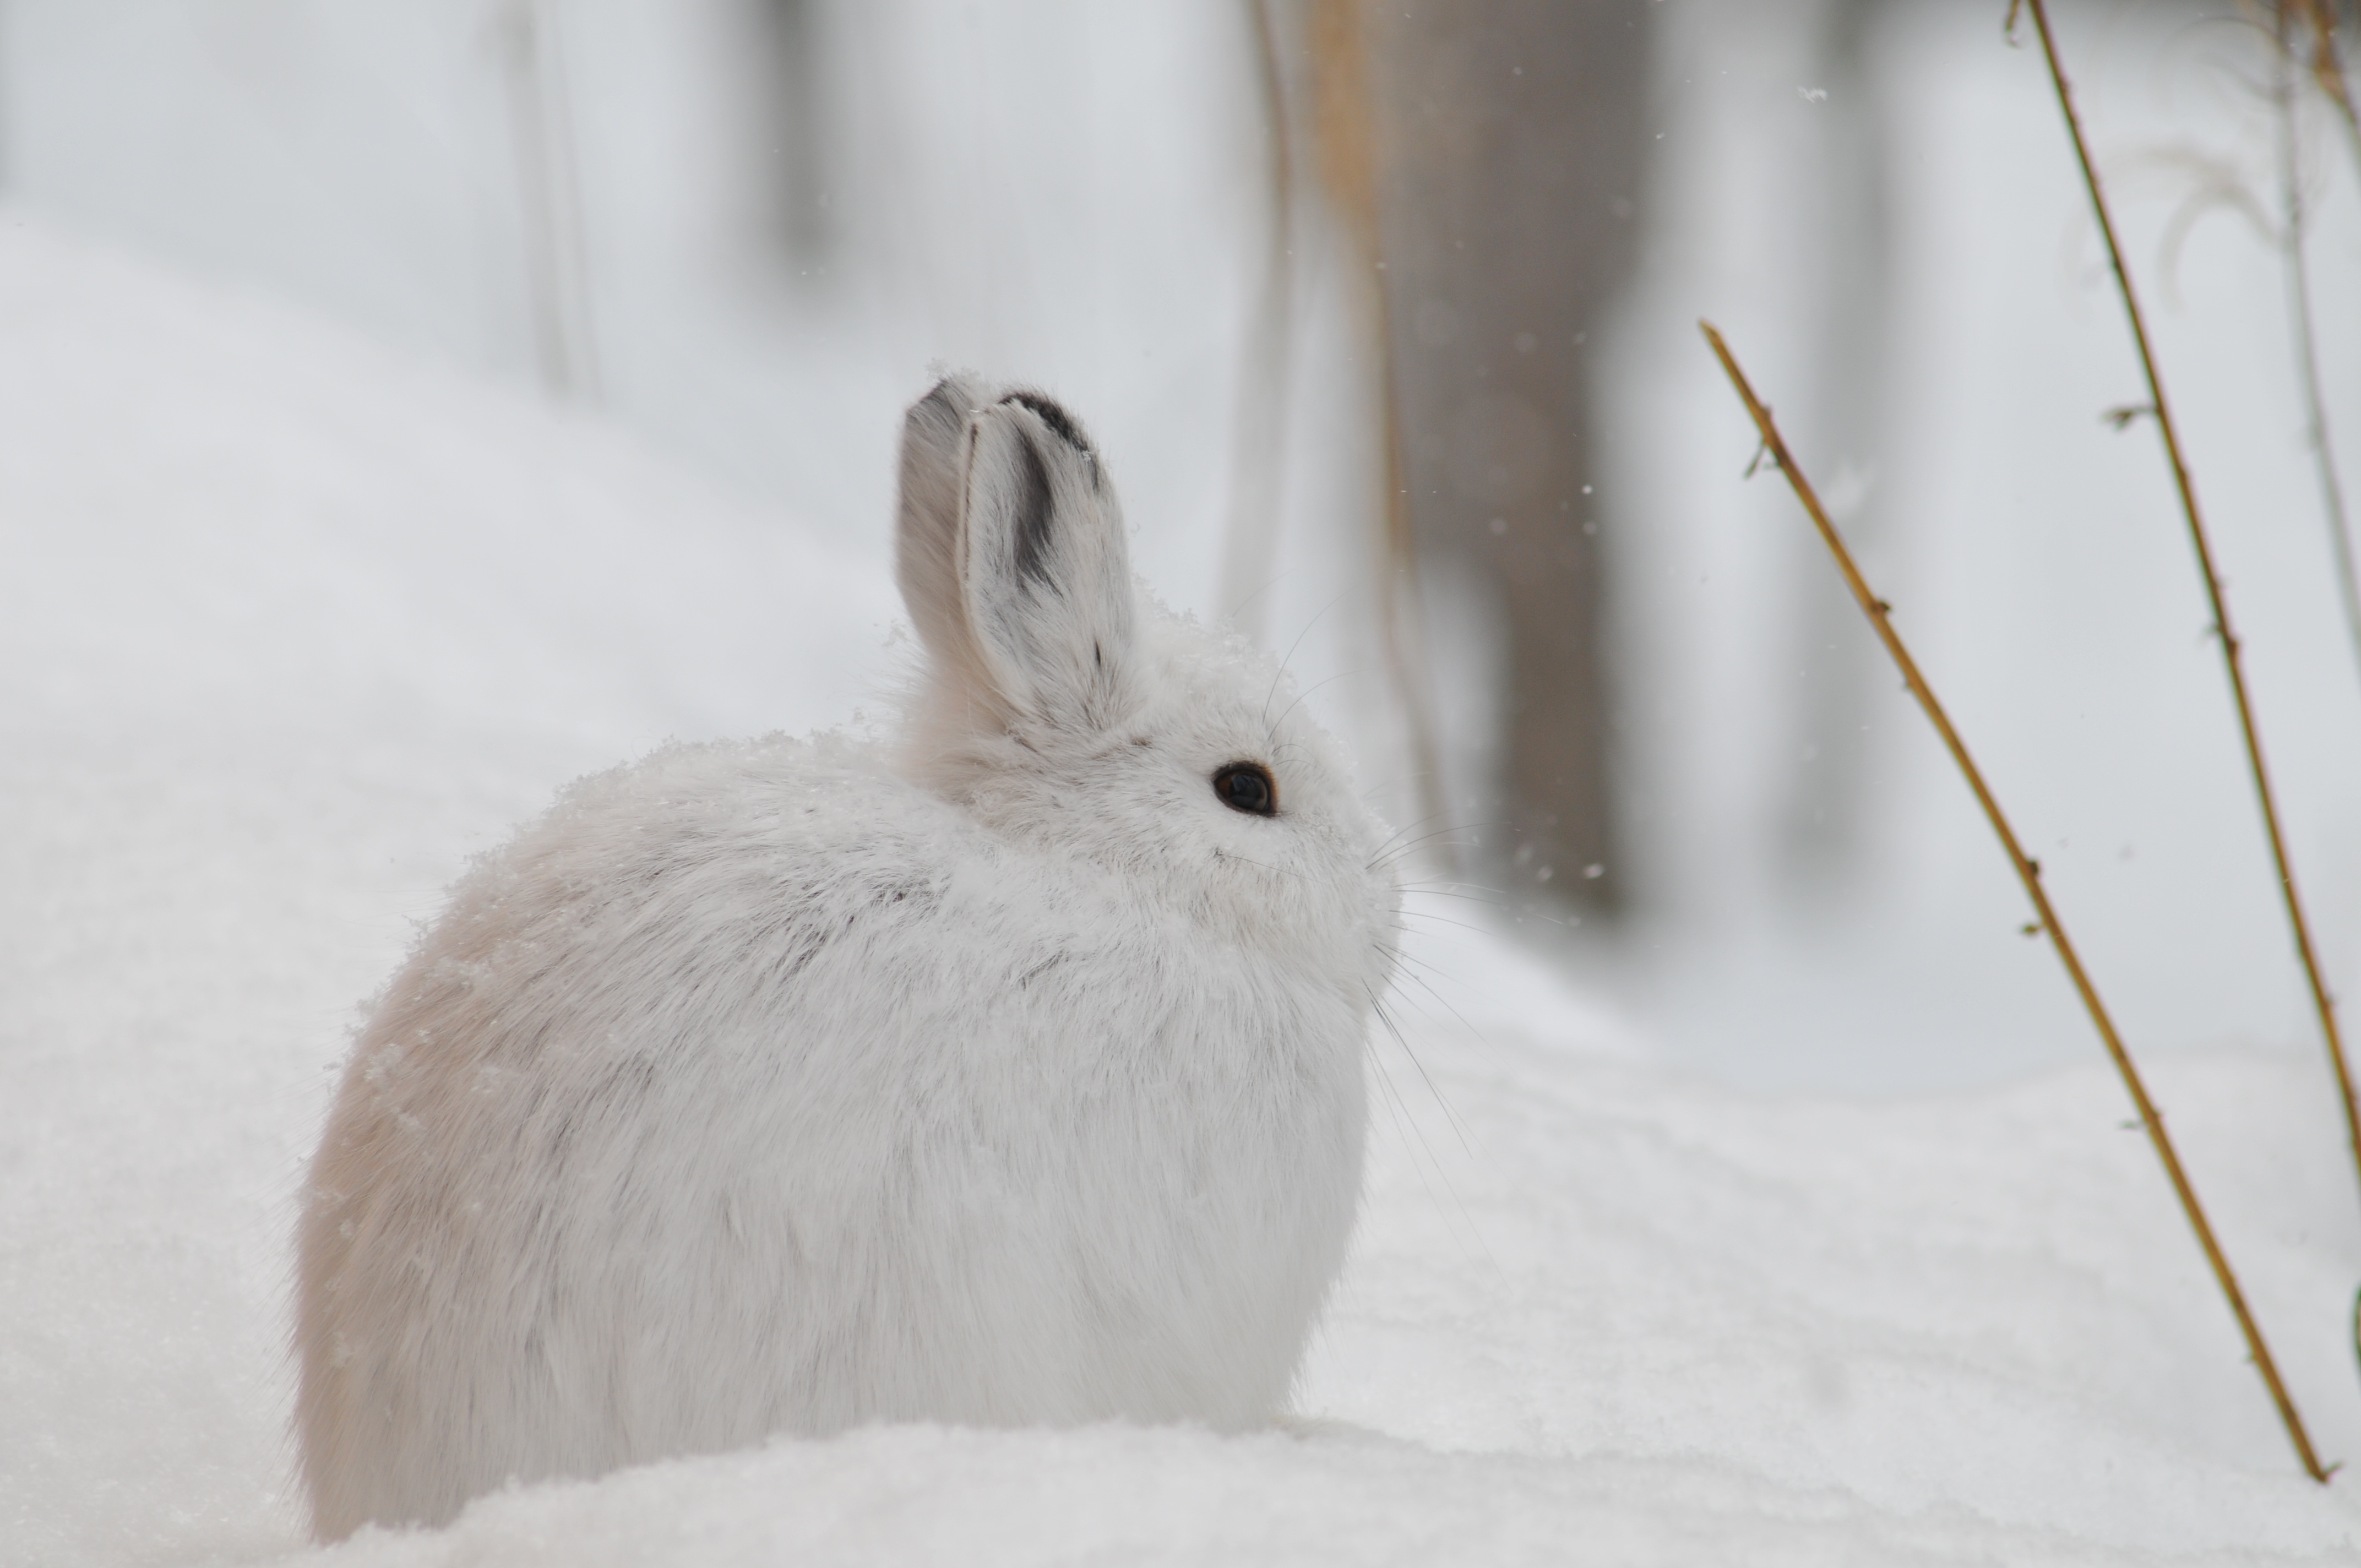 a white hare sitting in the snow